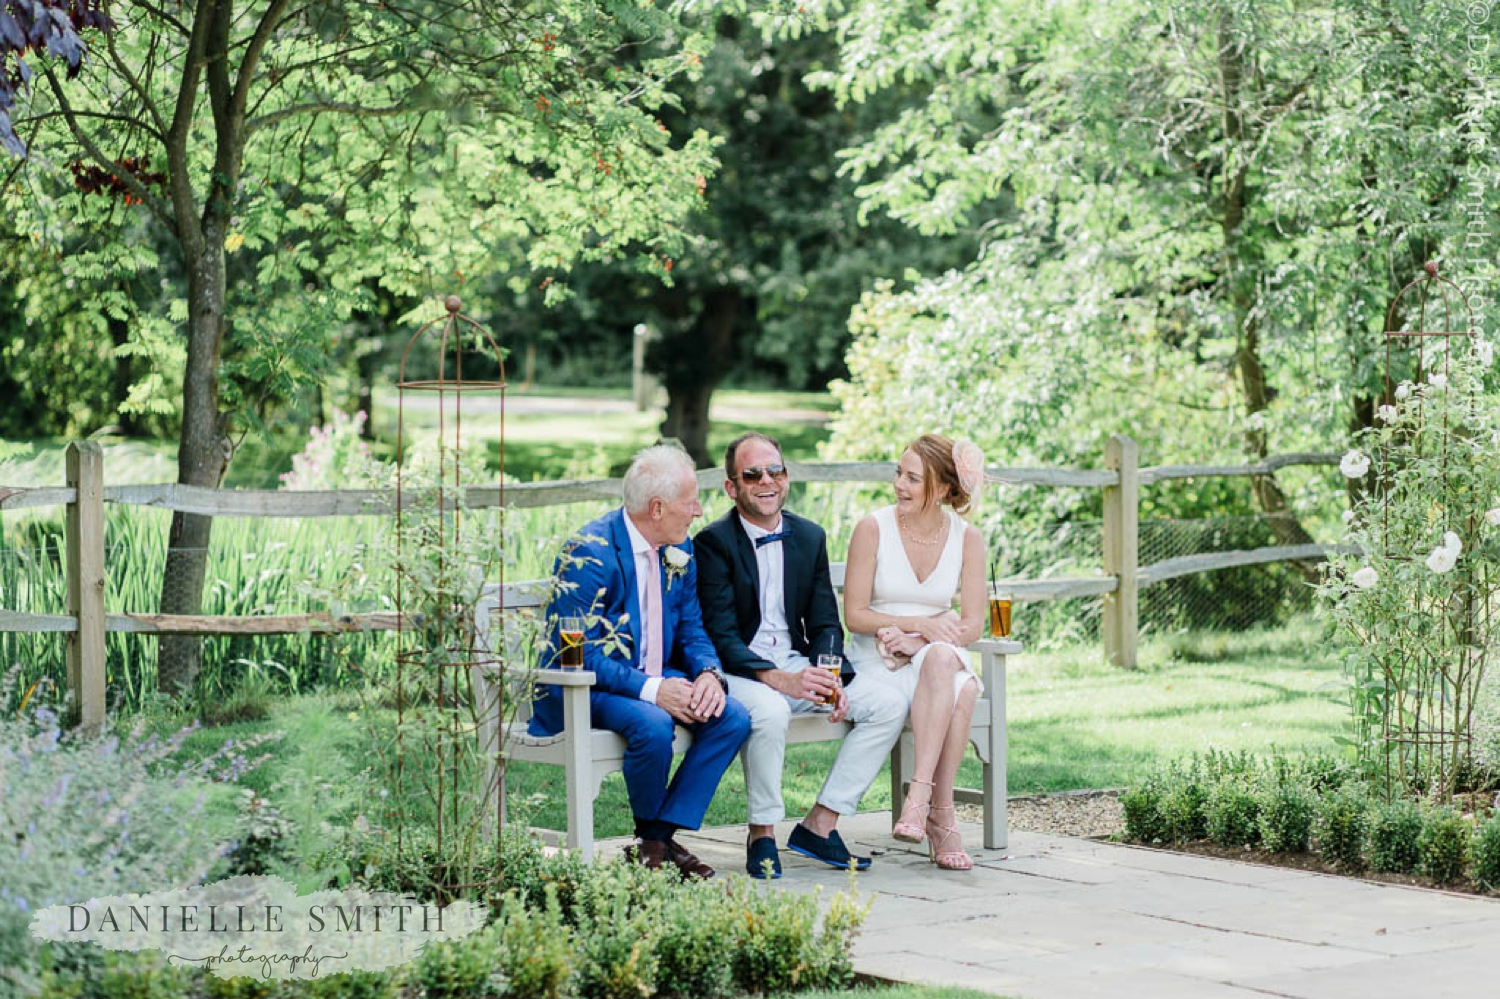 groom and 2 guests sitting on bench in gardens - houchins wedding photography